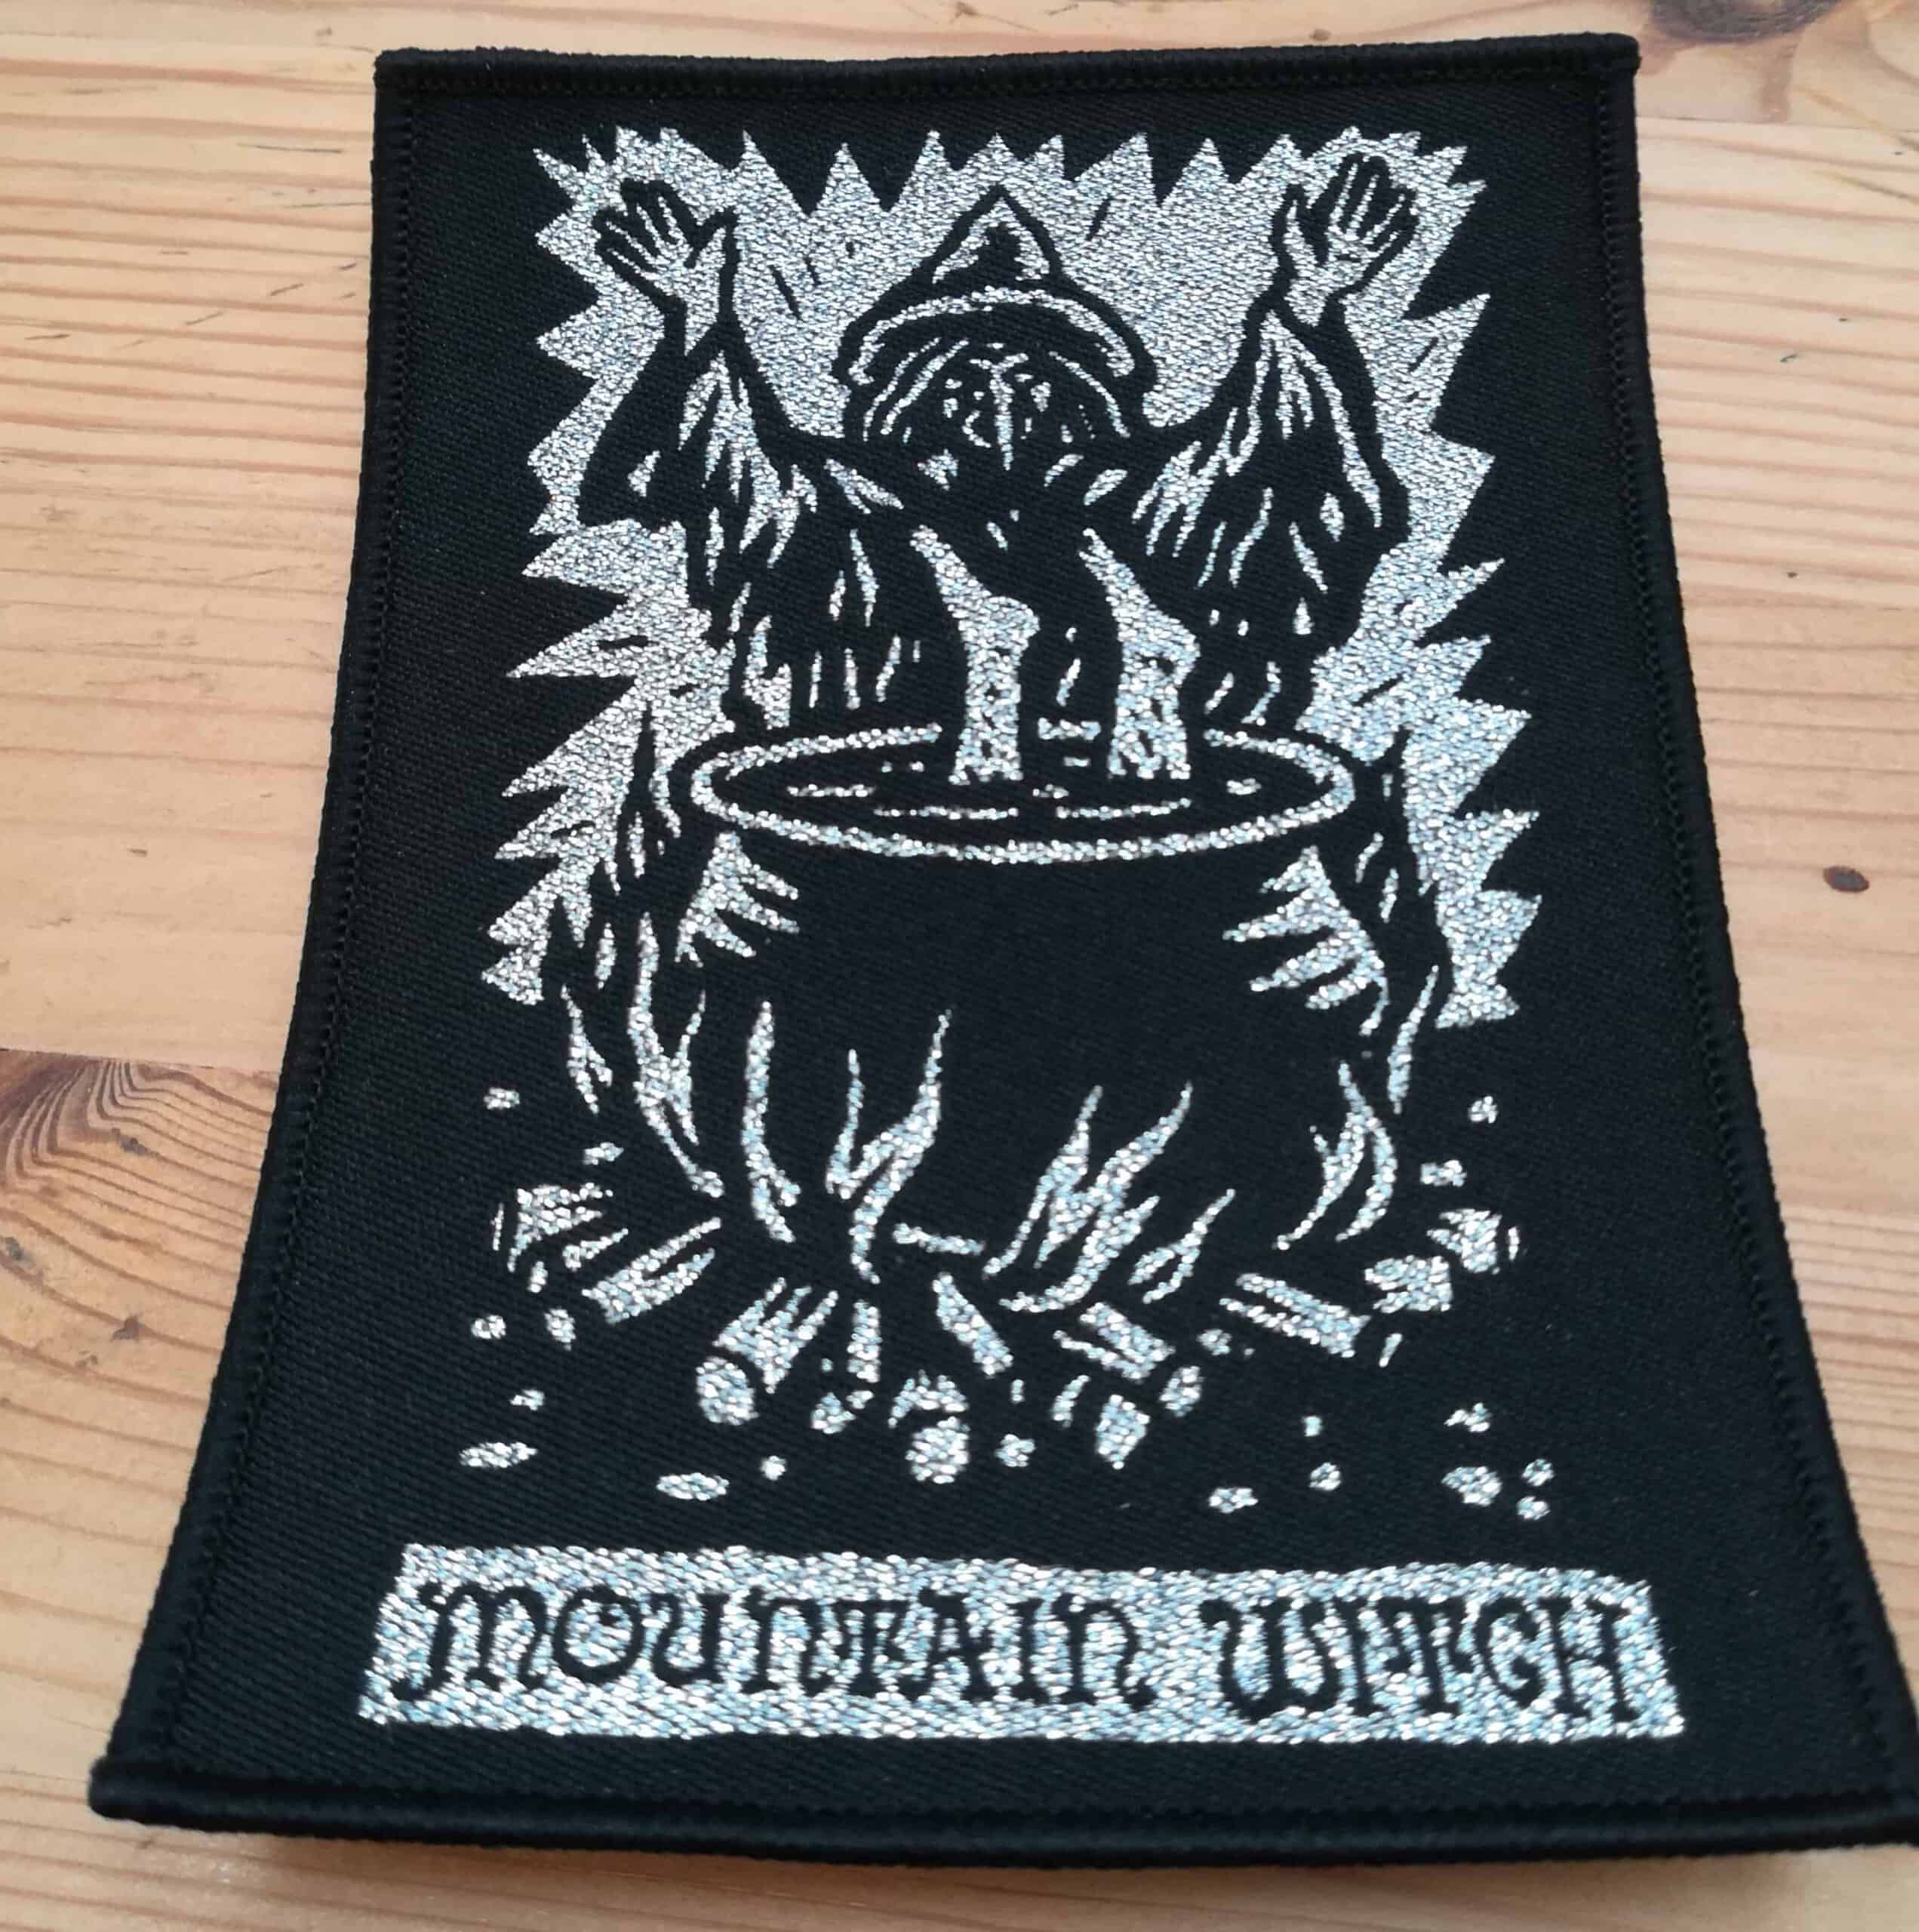 Mountain Witch Hexenkessel Patch